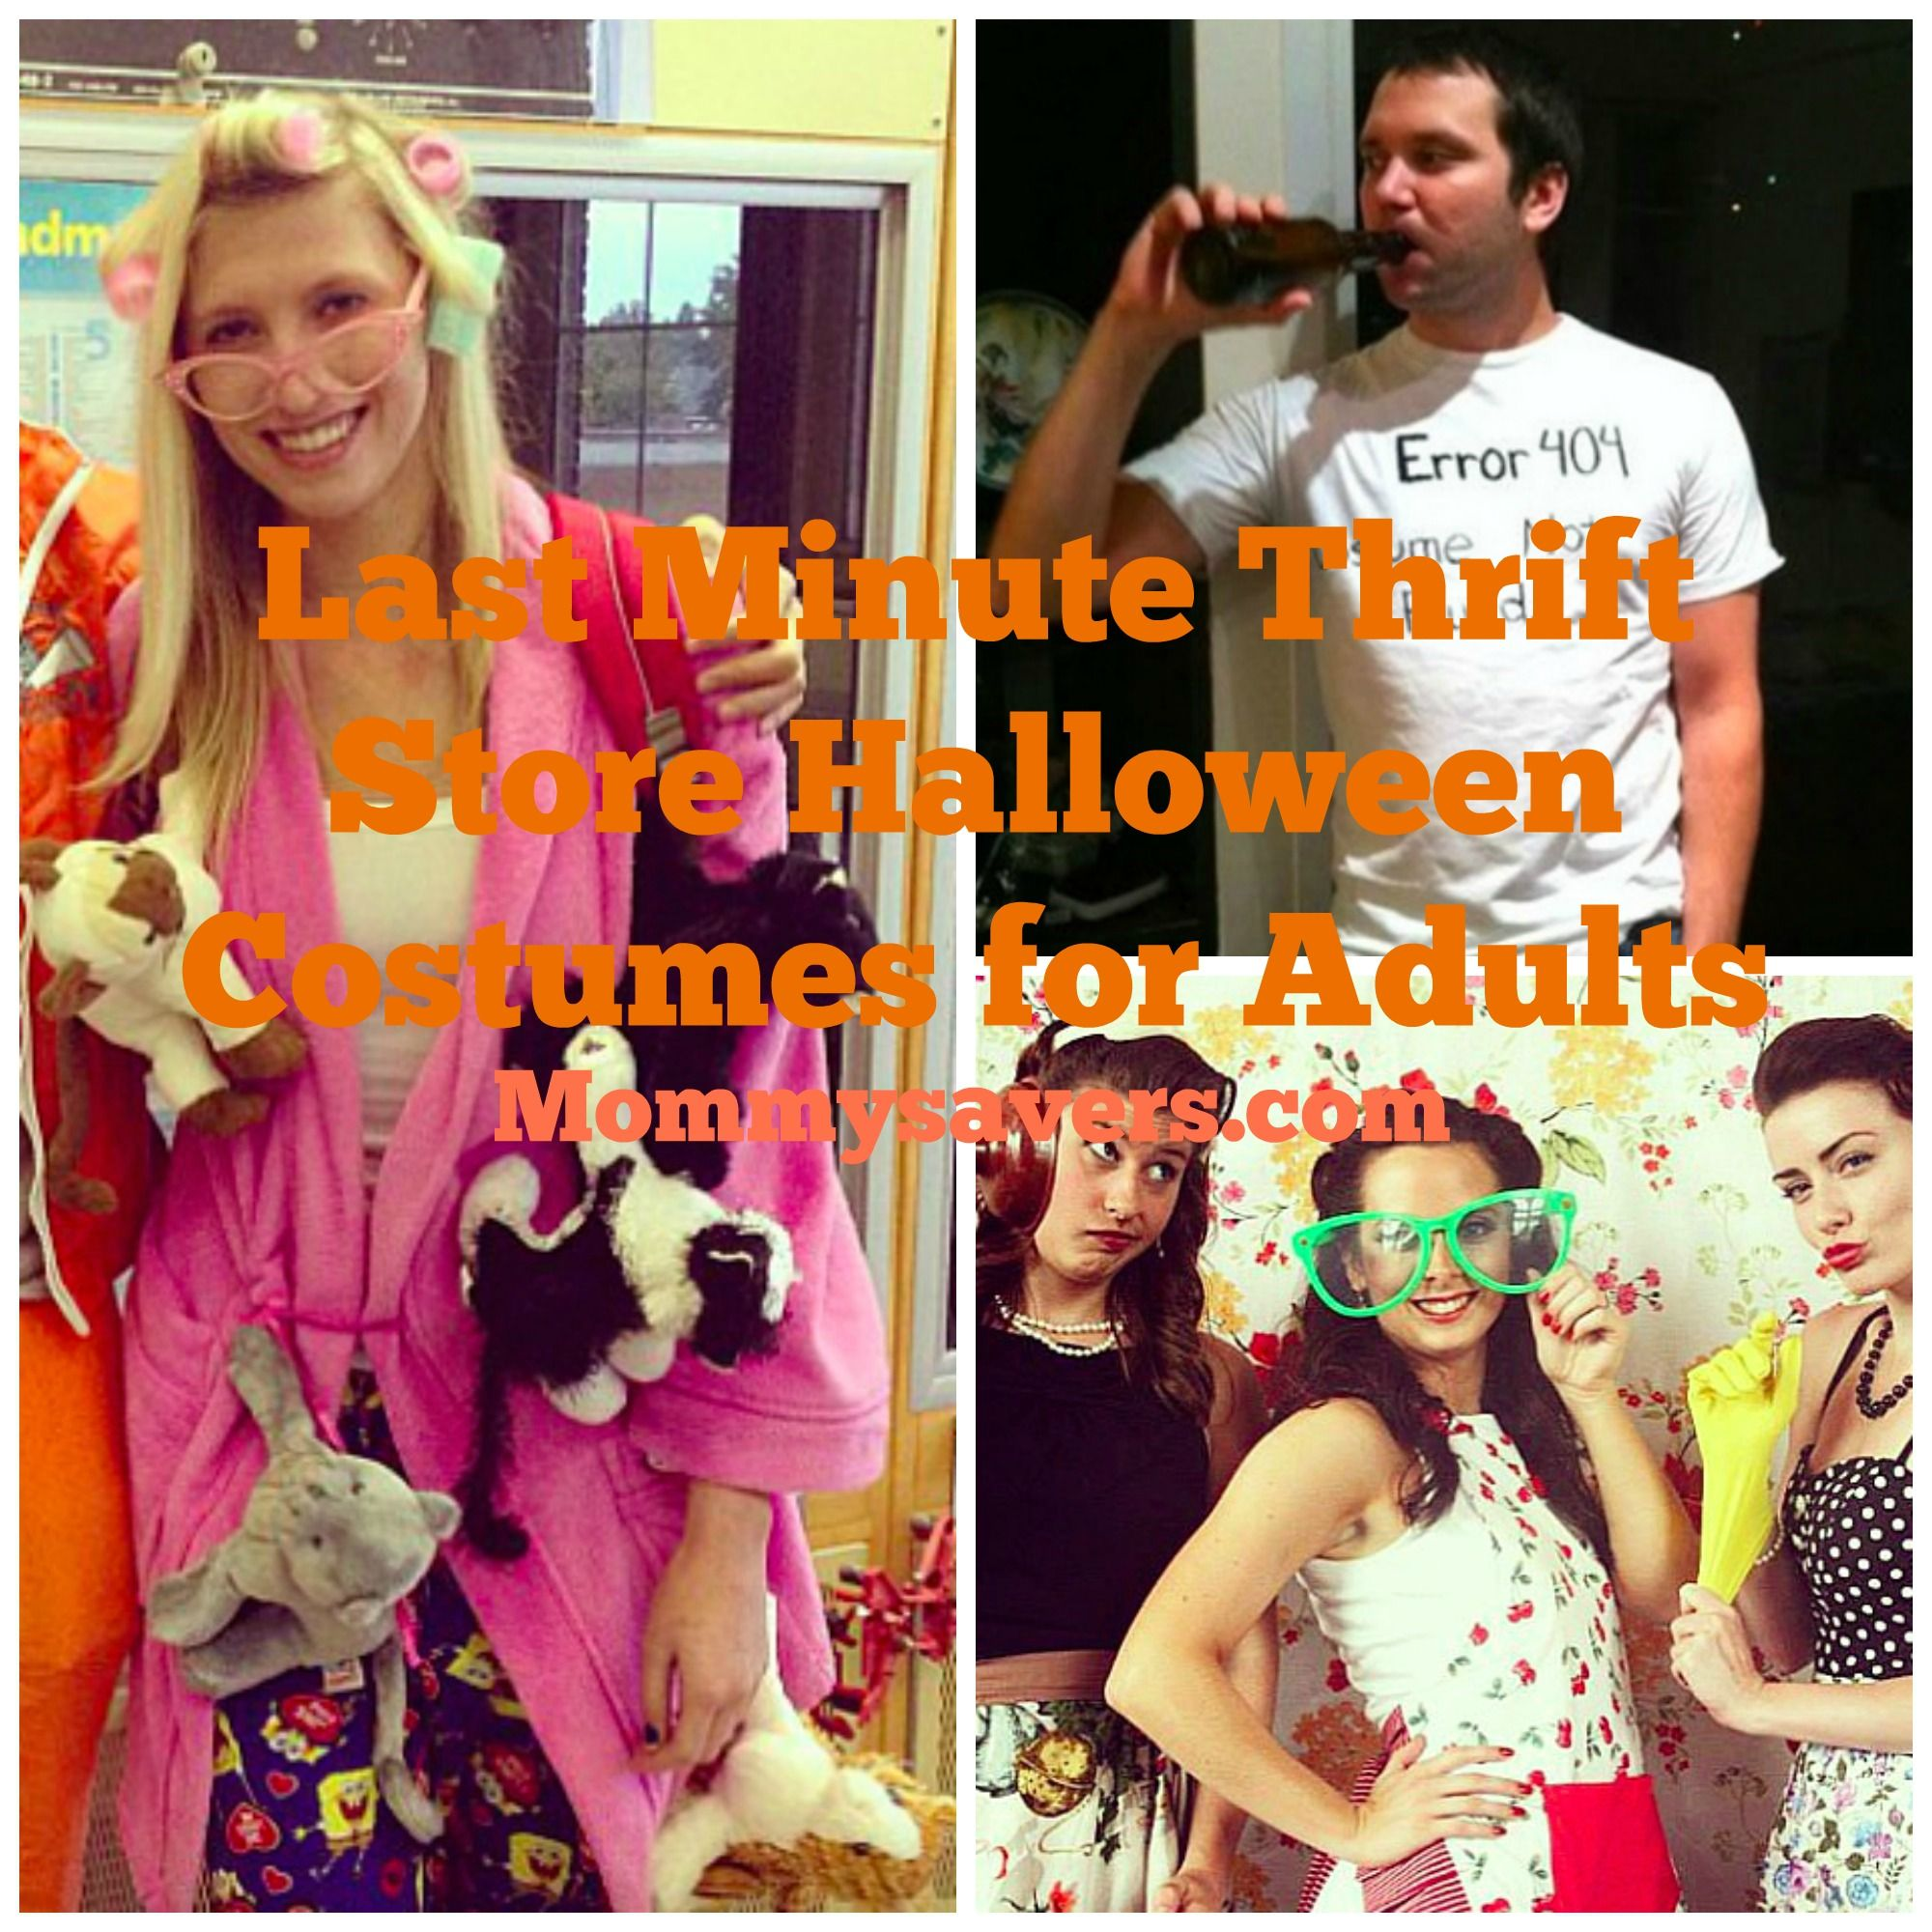 Last Minute Thrift Store Halloween Costume Ideas For Adults ...